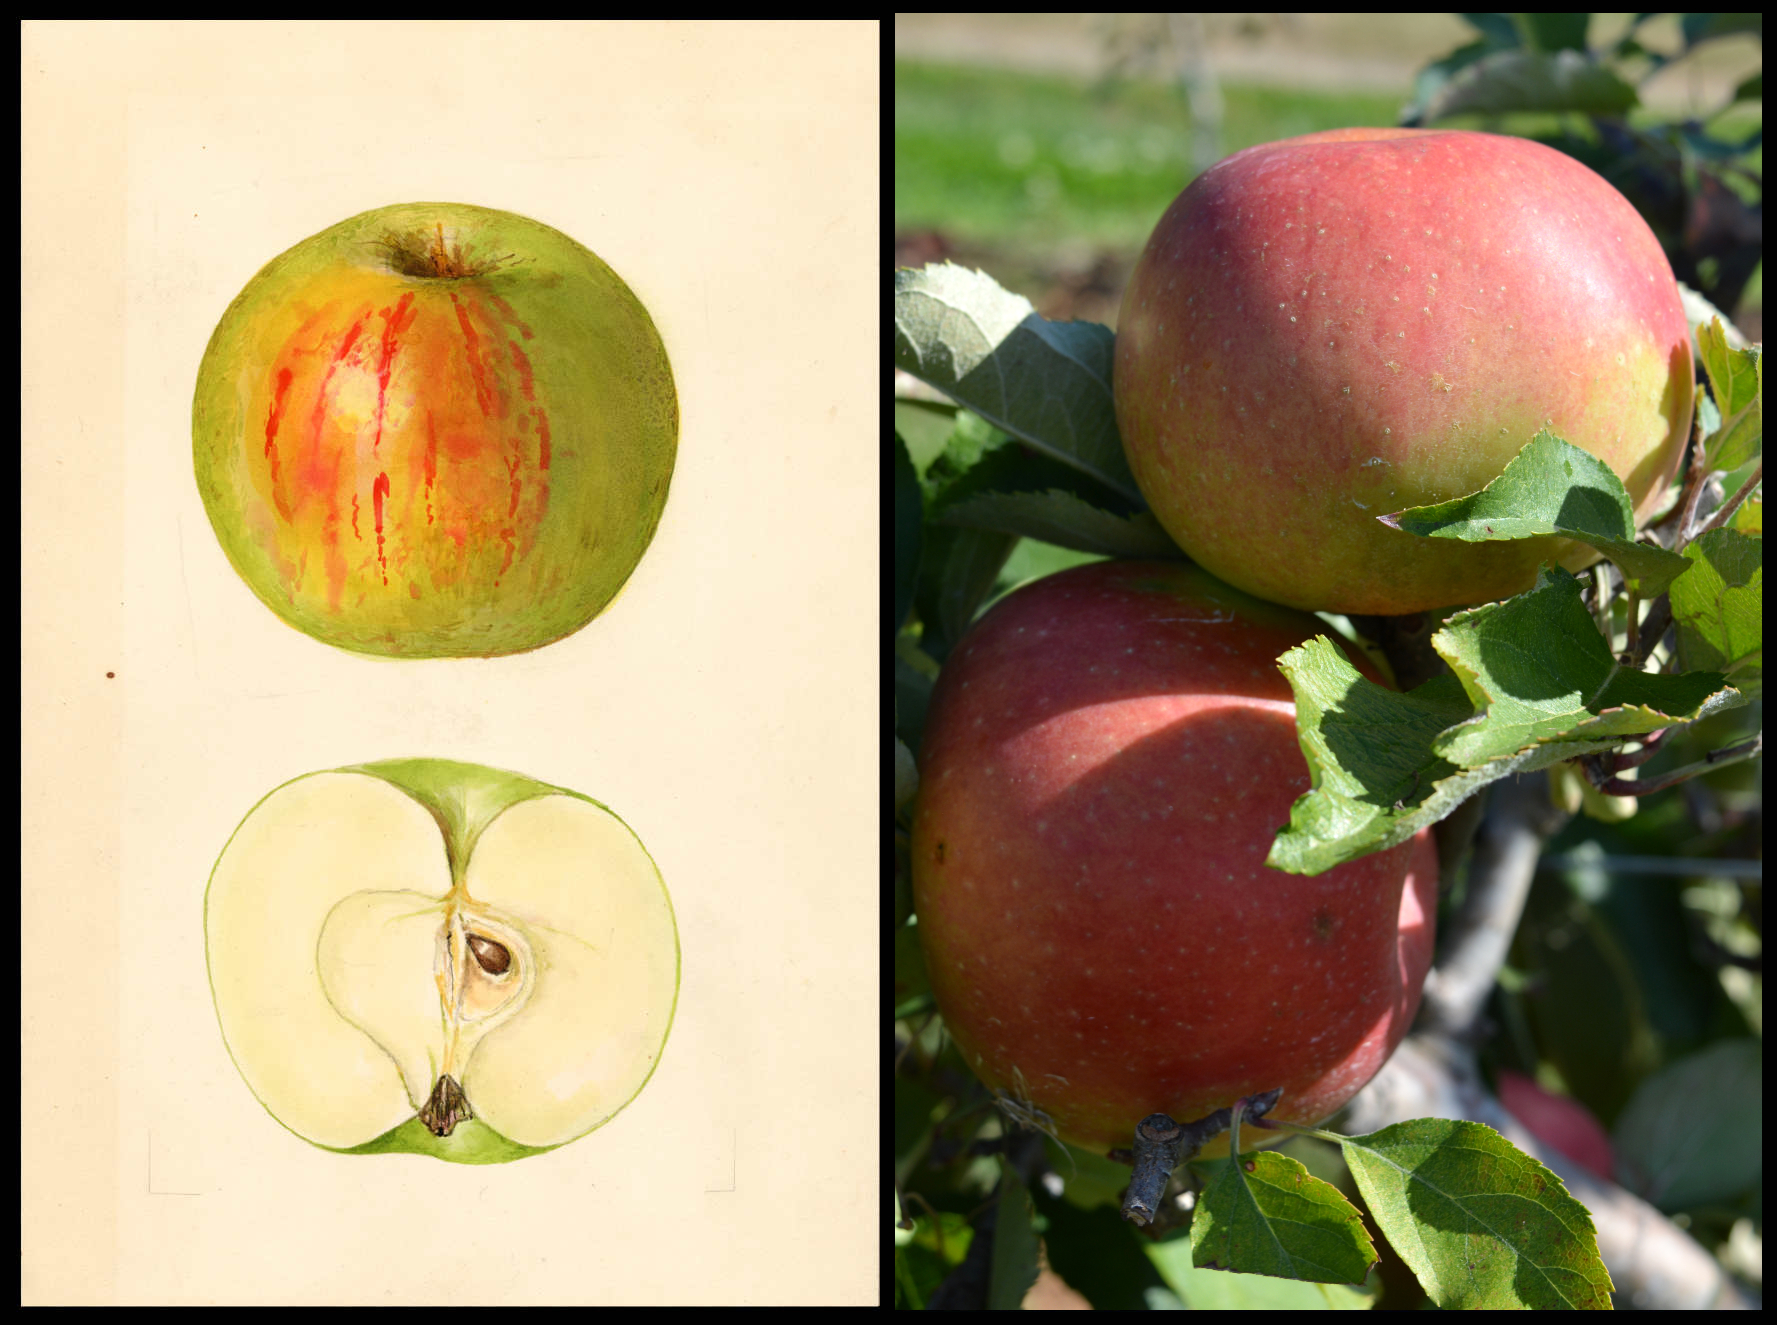 green apple with pink blush